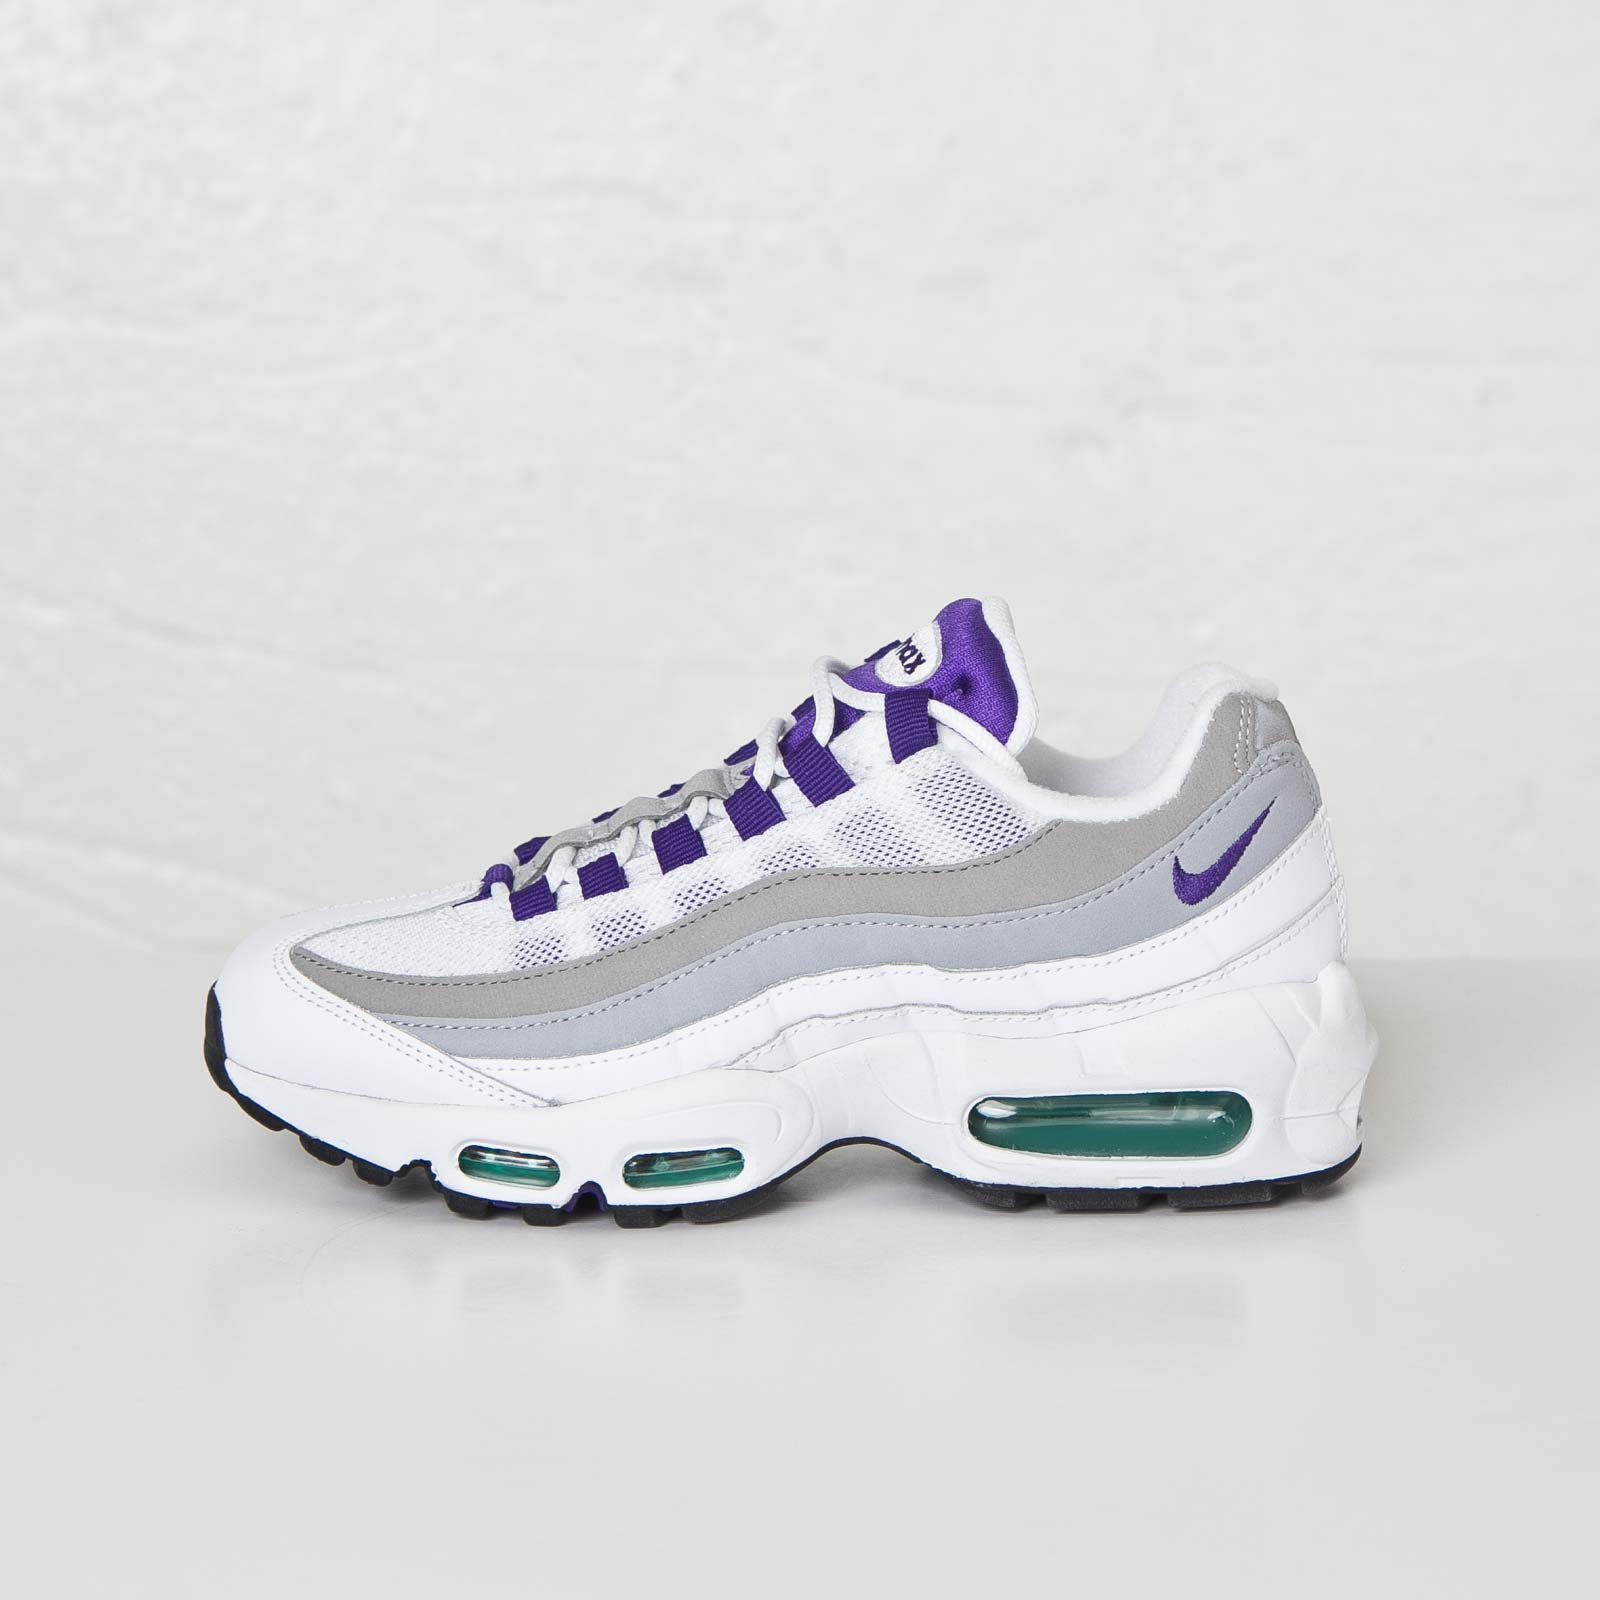 low priced 1c164 6cd76 ... Nike Wmns Air Max 95 ...